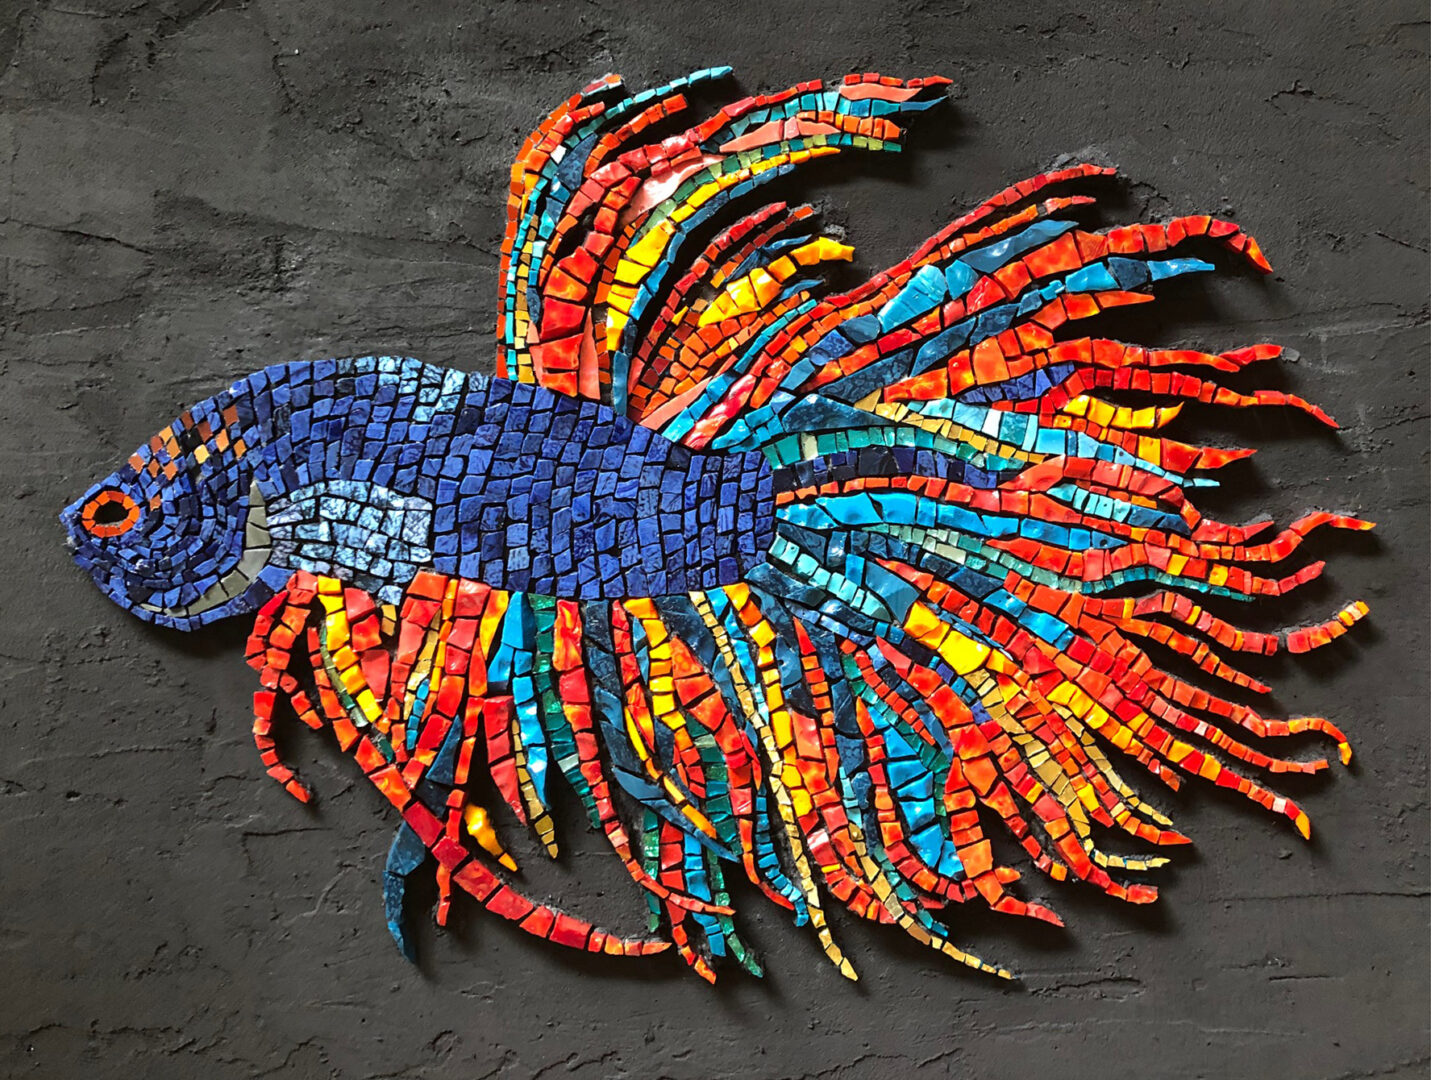 "<b>Betta Beauty</b><br>Materials: Smalti, gold smalti, iridized tile<br>Dimension: 33""W x 25½""H x 1""D<br>Price: $1,800"